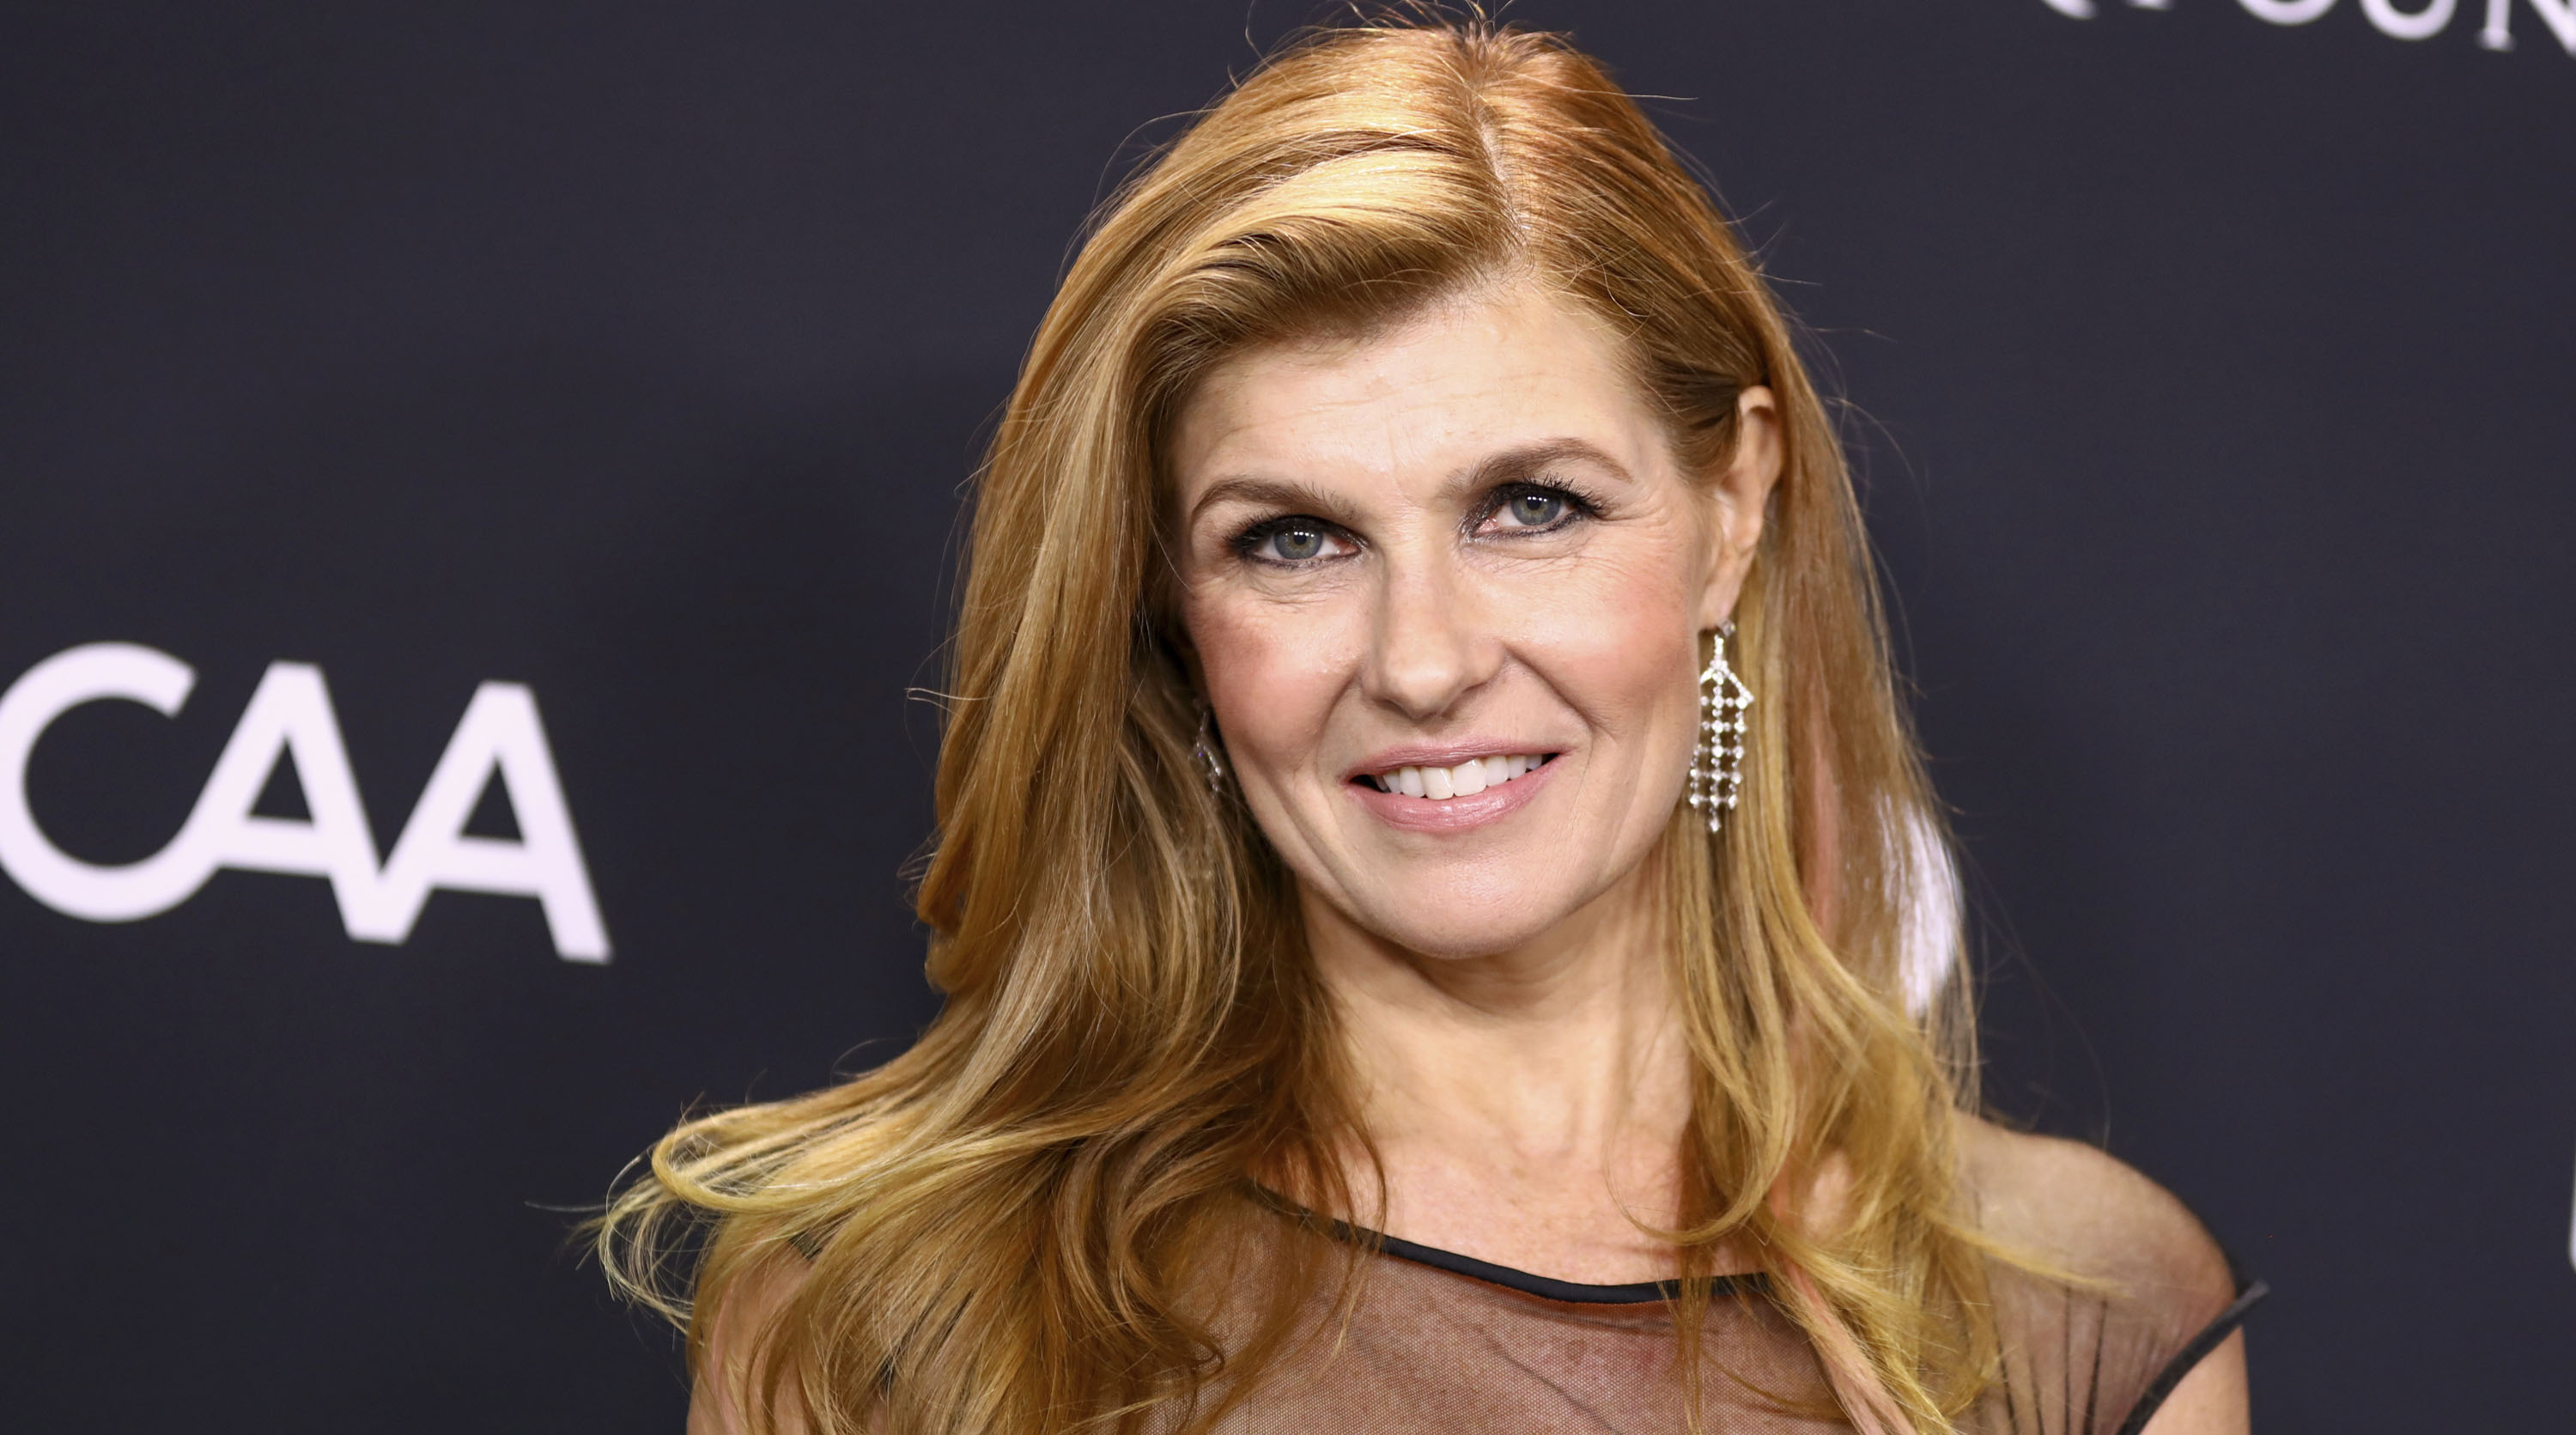 Connie Britton tells EW's BINGE podcast who the inspiration for Tami Taylor is.